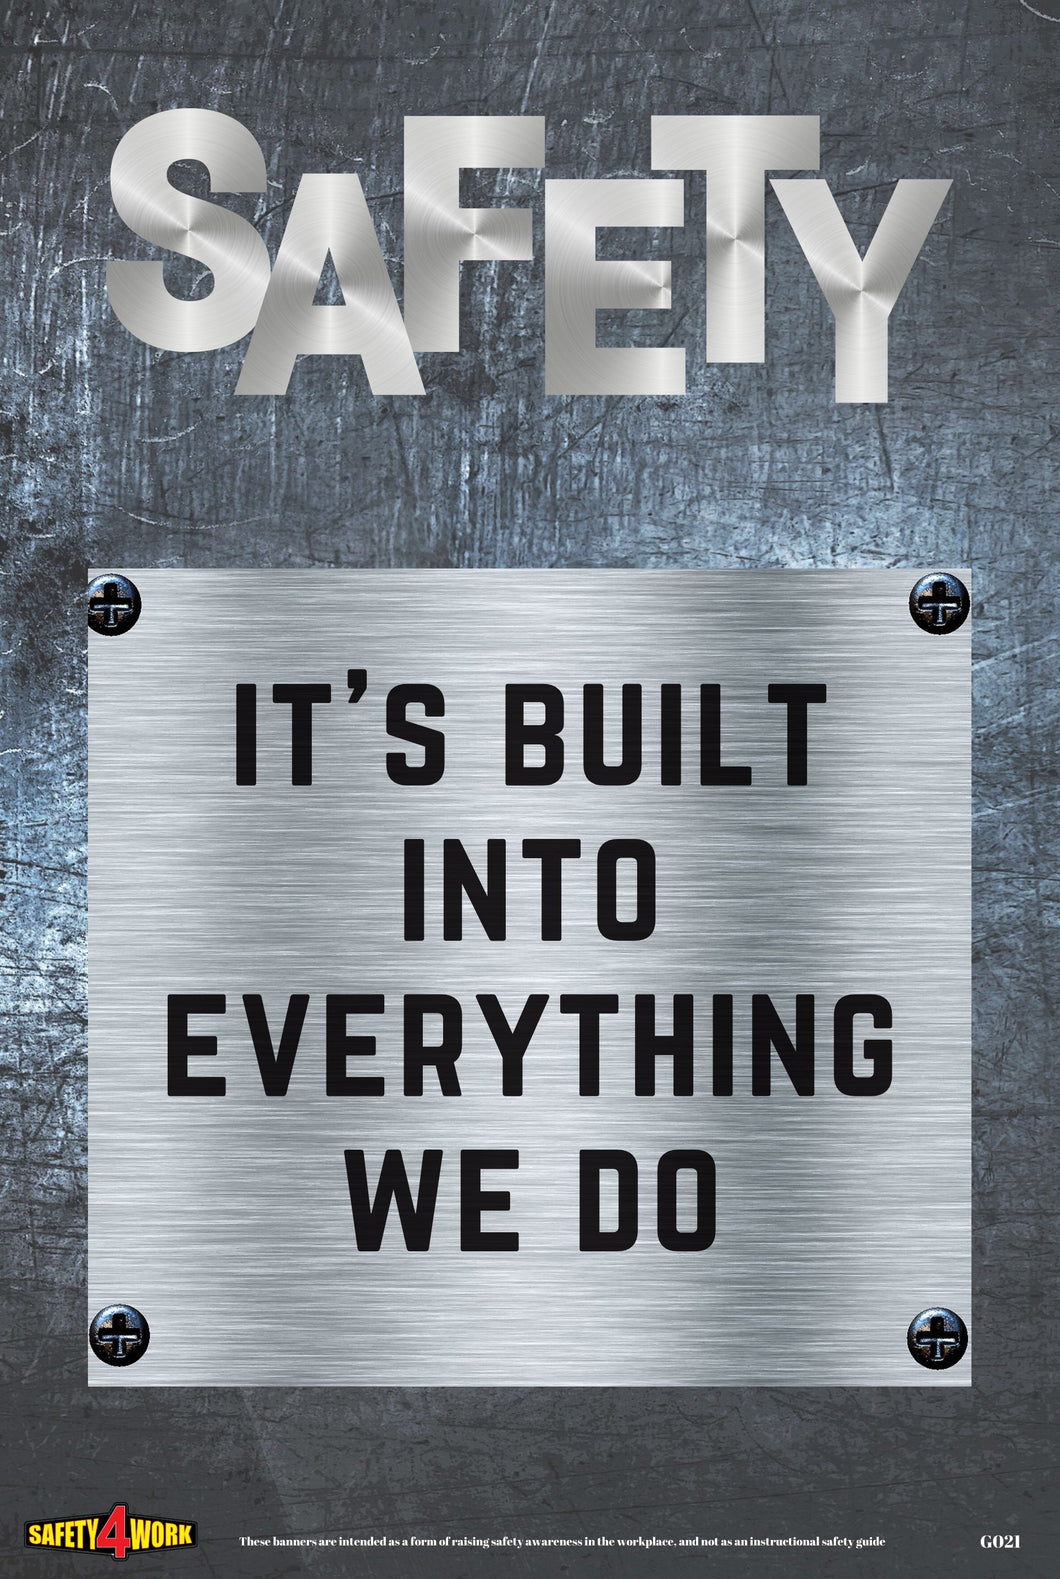 G021- General Workplace Safety Poster